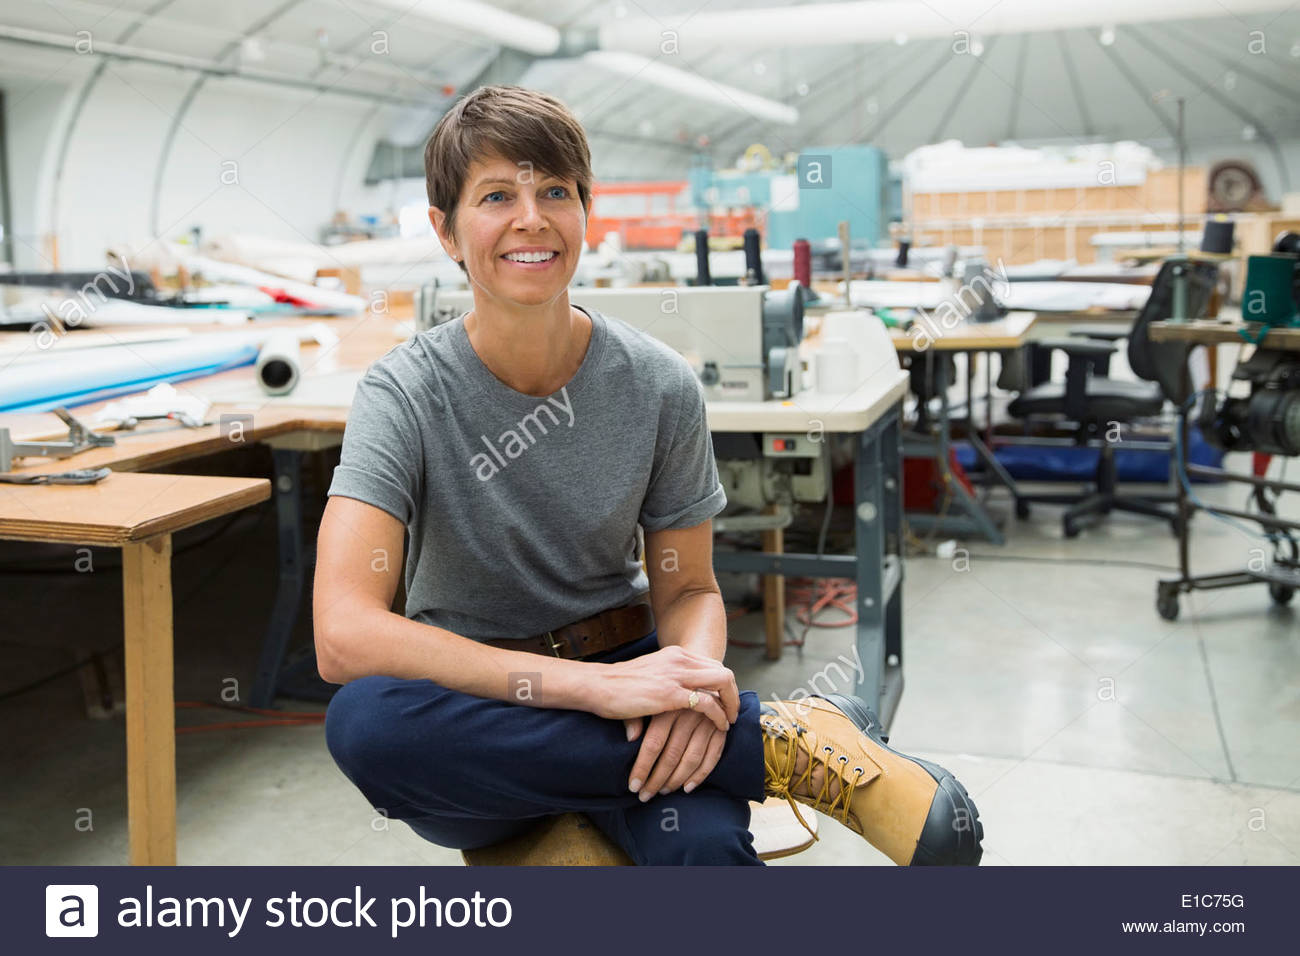 Smiling worker in textile manufacturing plant Stock Photo